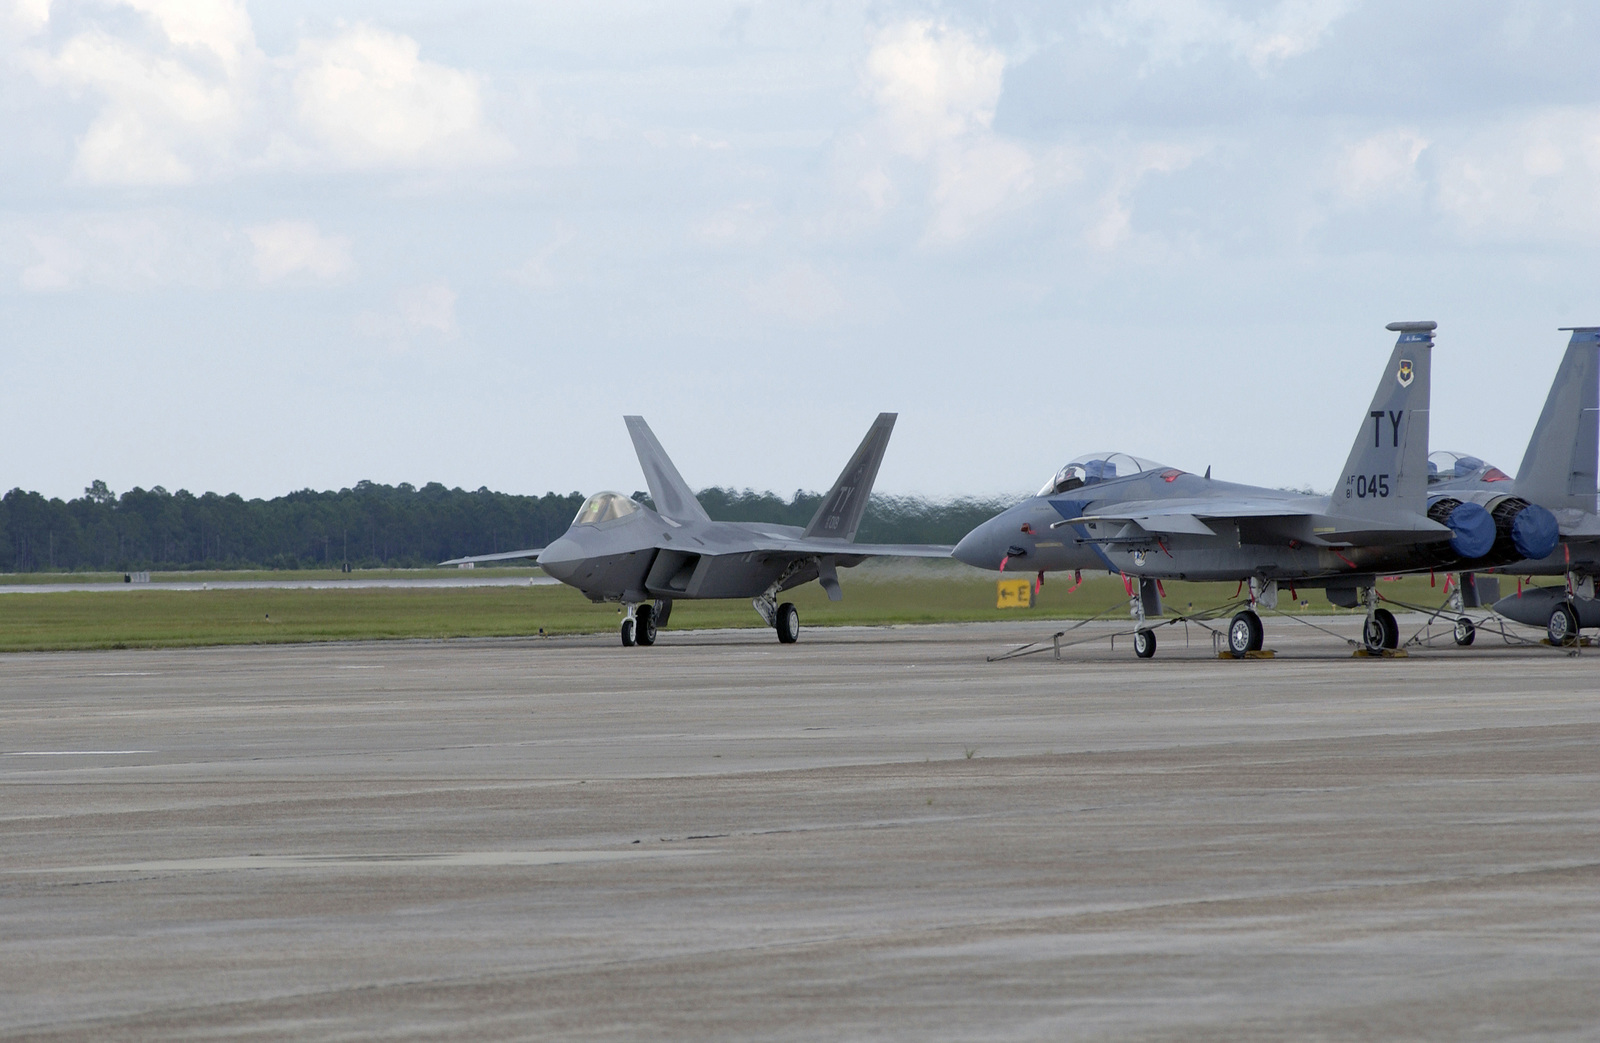 """The US Air Force (USAF) F/A-22 Raptor (number 18) taxis by USAF F-15C Eagle fighter jets of the 95th Fighter Squadron (FS) after landing. This is the first F/A-22 Raptor delivered to the Air Force. It will become part of the 43rd Fighter Squadron (FS) which will be responsible for training pilots to fly the new air superiority fighter. The plane is piloted by USAF Lieutenant Colonel (LTC) Jeffrey """"Cobra"""" Harrigian, Commander, 43rd Fighter Squadron (FS), 325th Fighter Wing (FW), Air Education and Training Command (AETC), Tyndall Air Force Base (AFB), Florida (FL)"""